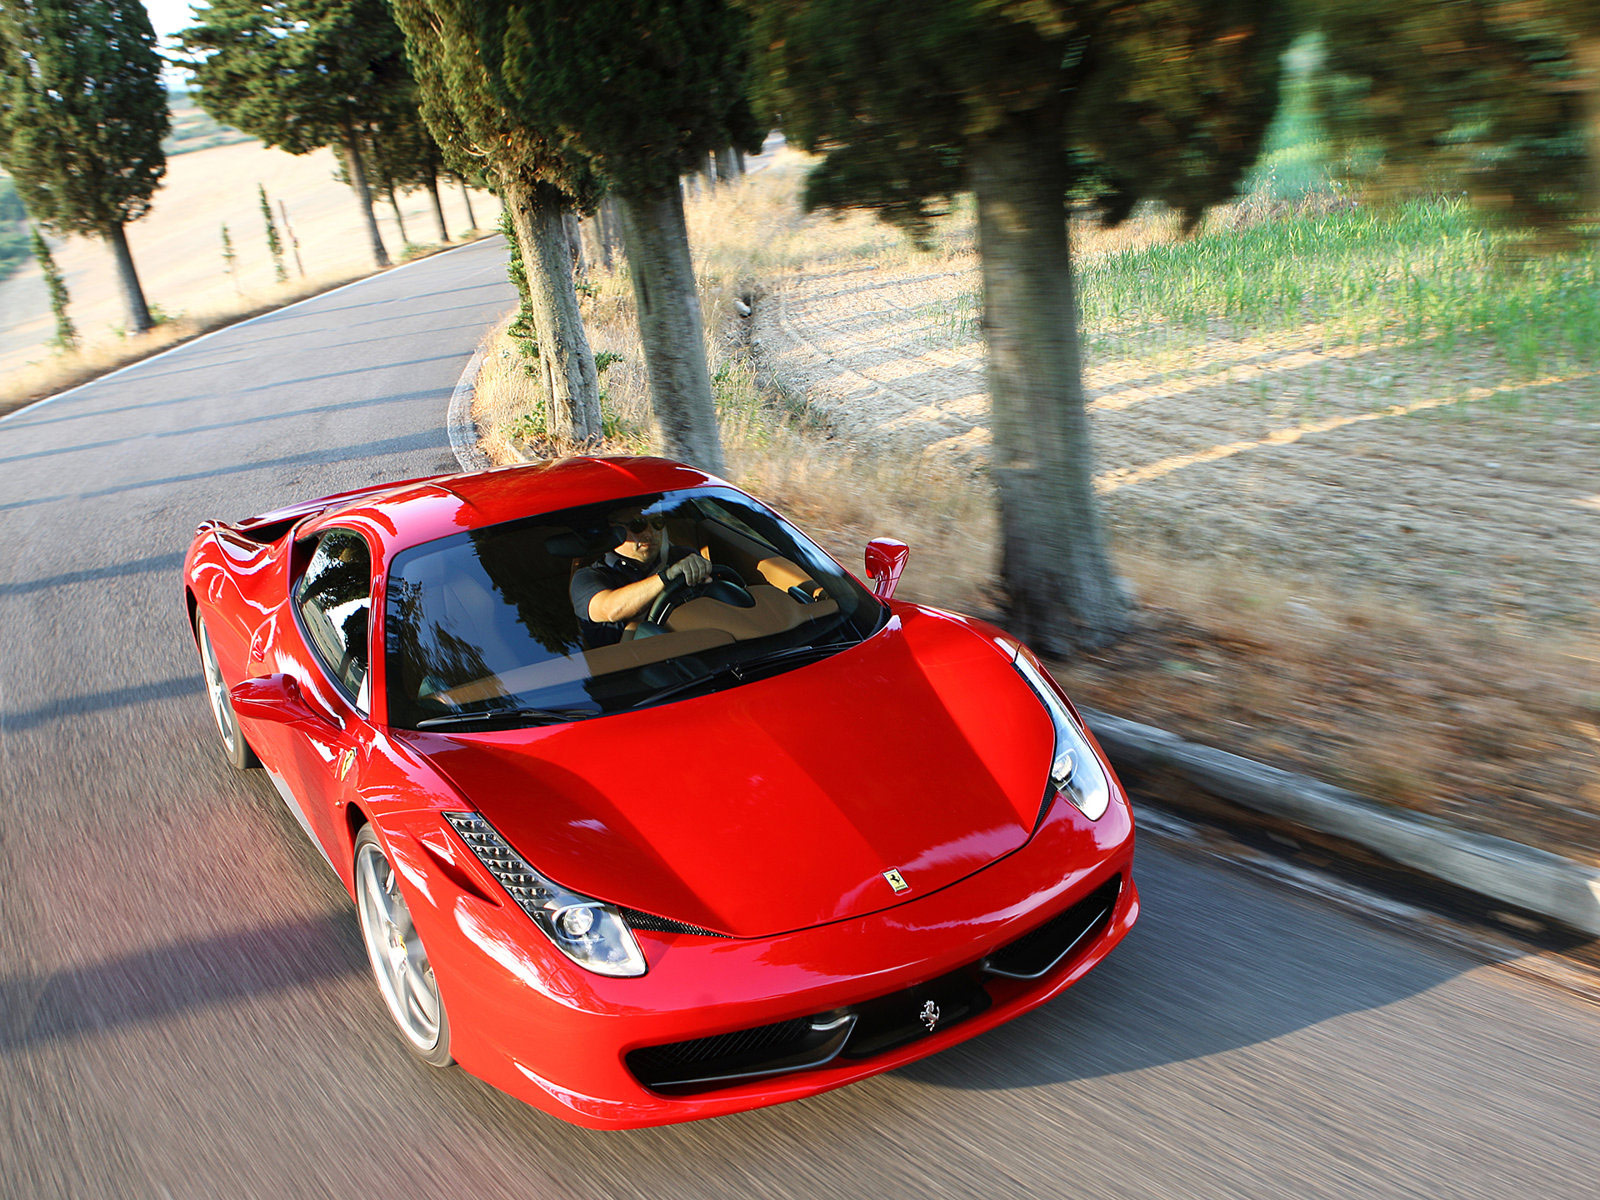 gambar mobil ferrari 458 italia 2011. Black Bedroom Furniture Sets. Home Design Ideas